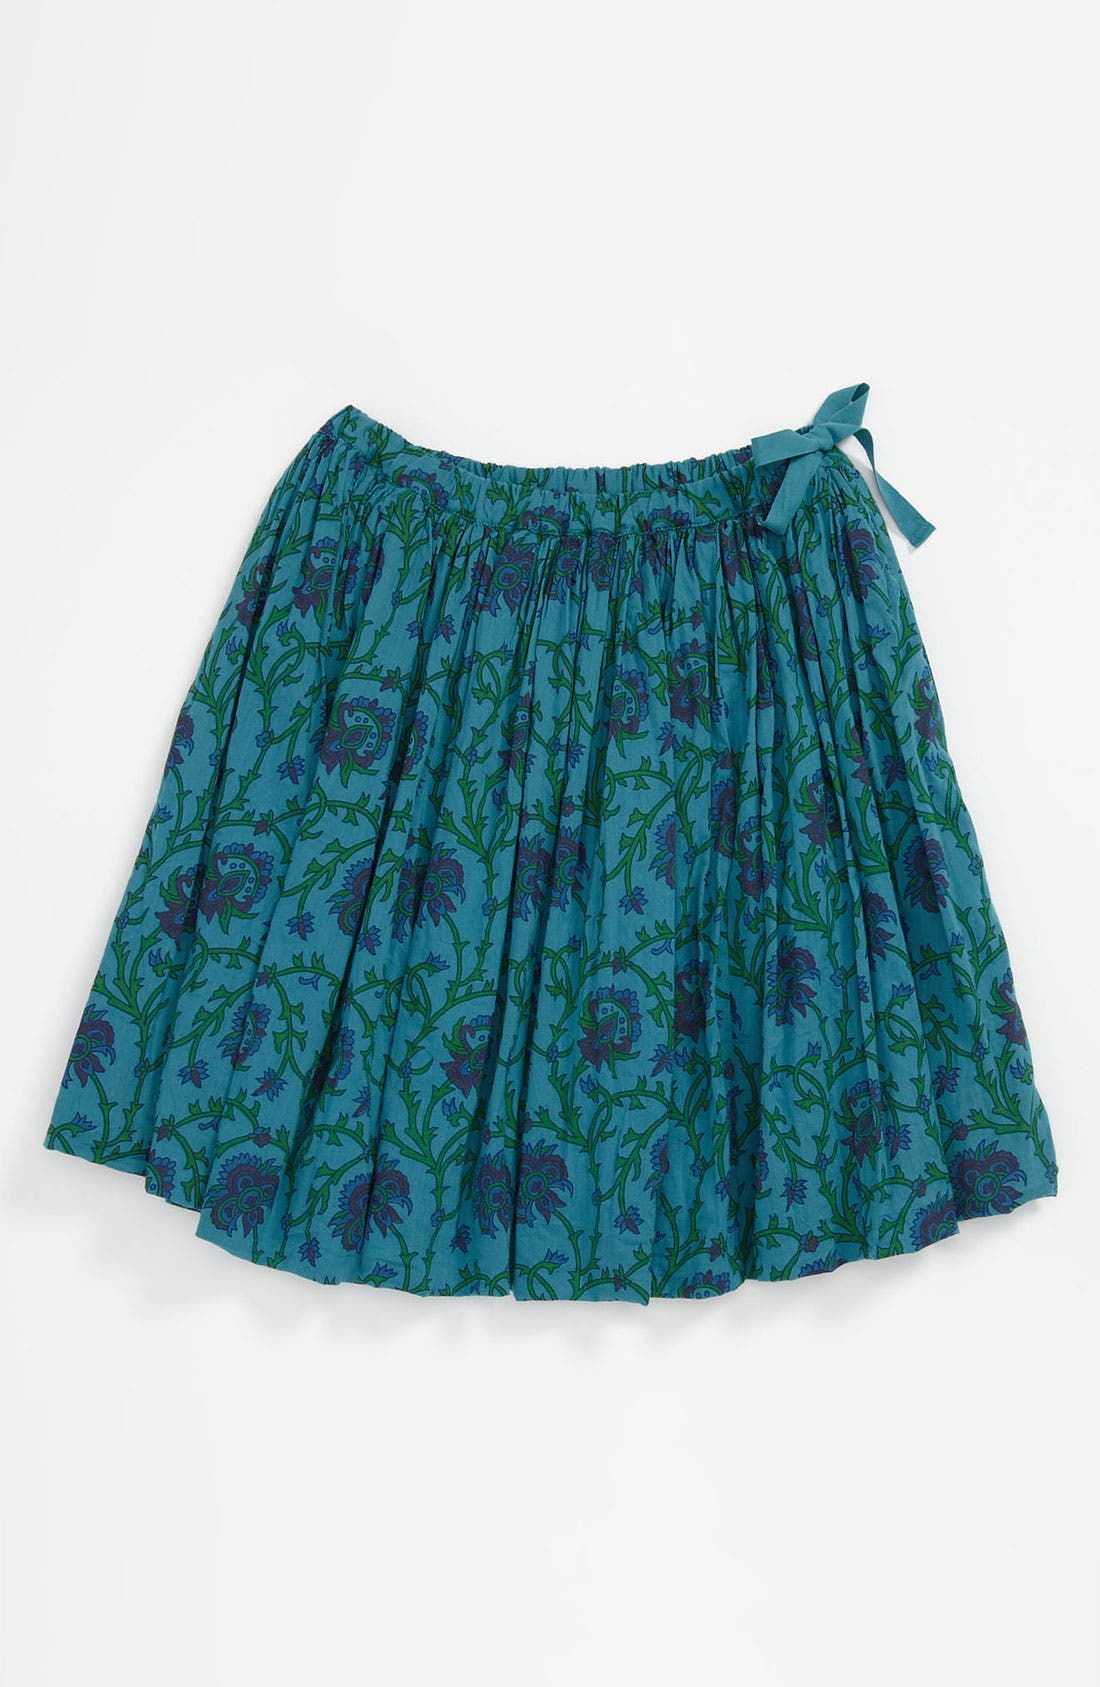 Alternate Image 1 Selected - Peek 'Eve' Skirt (Toddler, Little Girls & Big Girls)